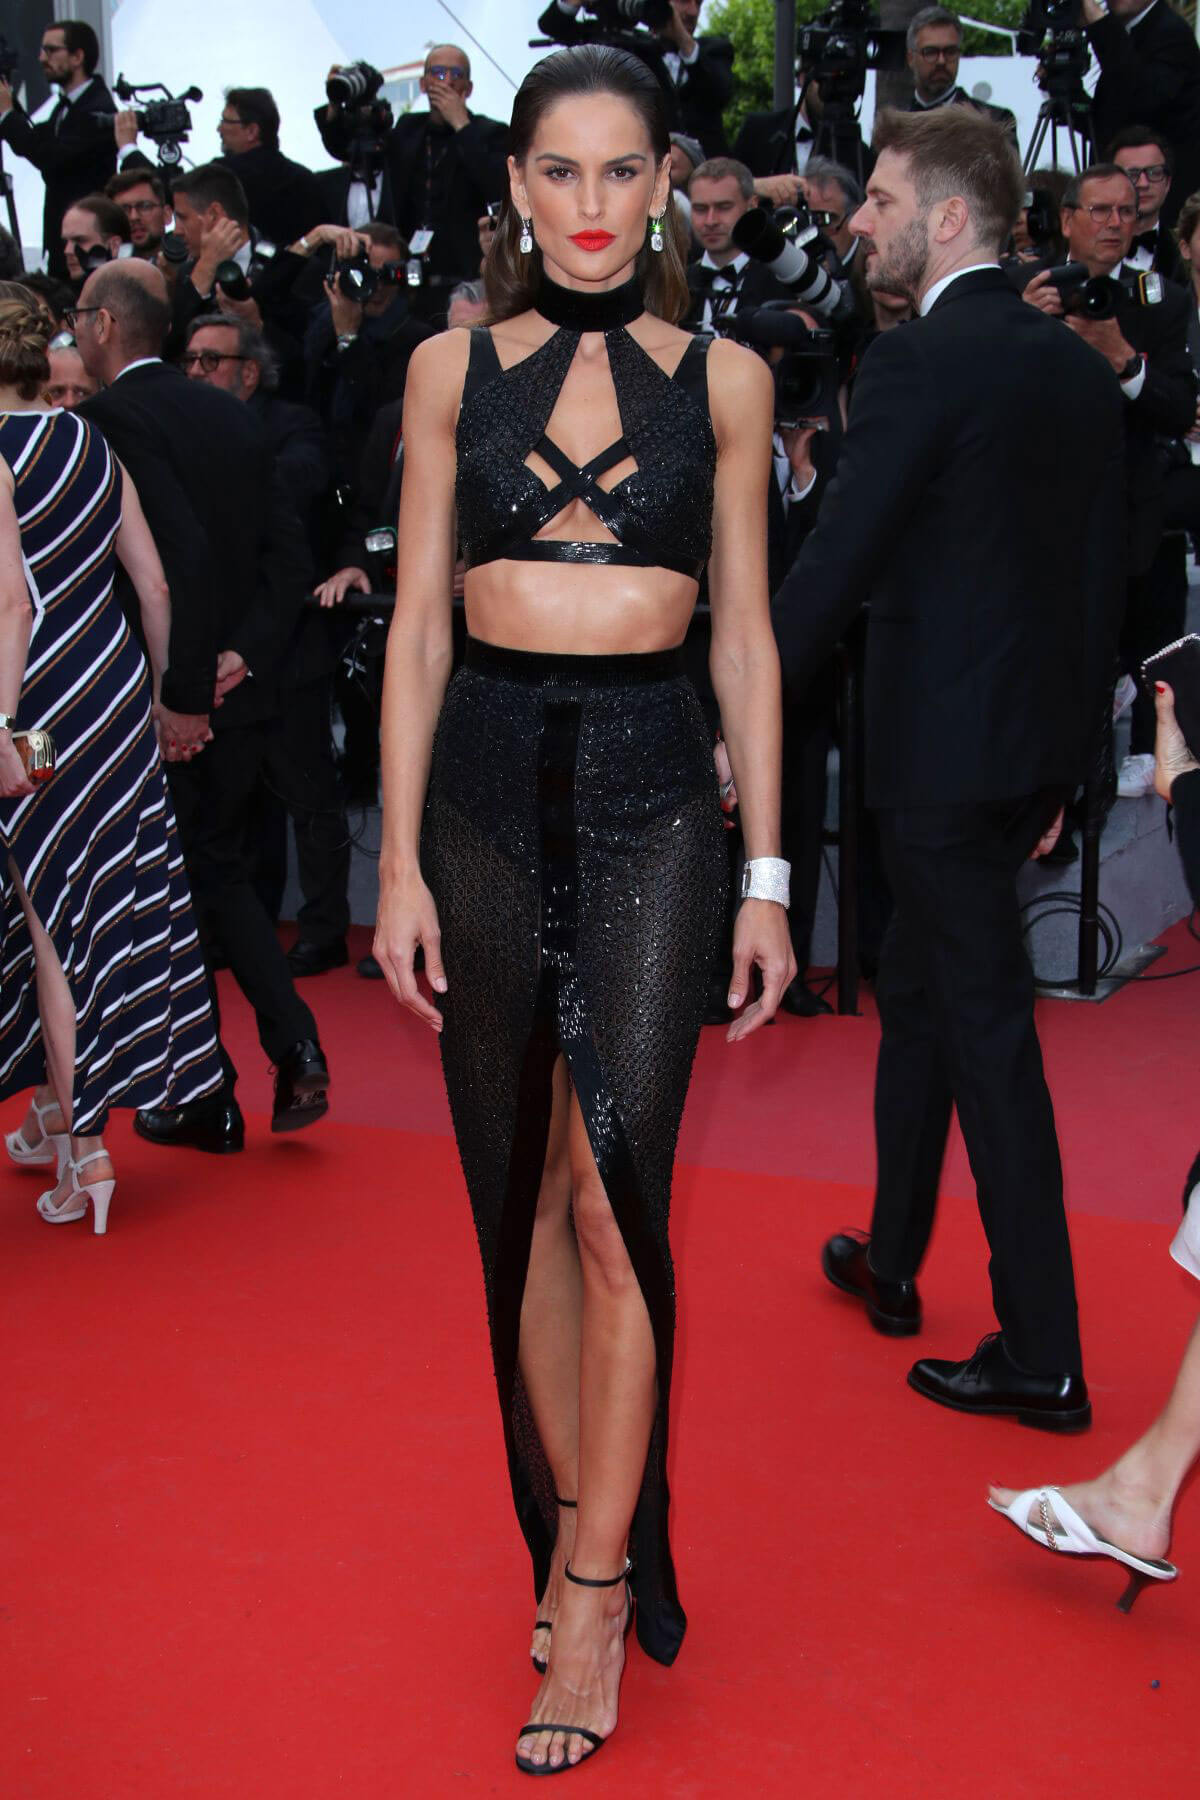 Izabel Goulart Stills at Solo: A Star Wars Story Premiere at Cannes Film Festival 2018/05/15 6